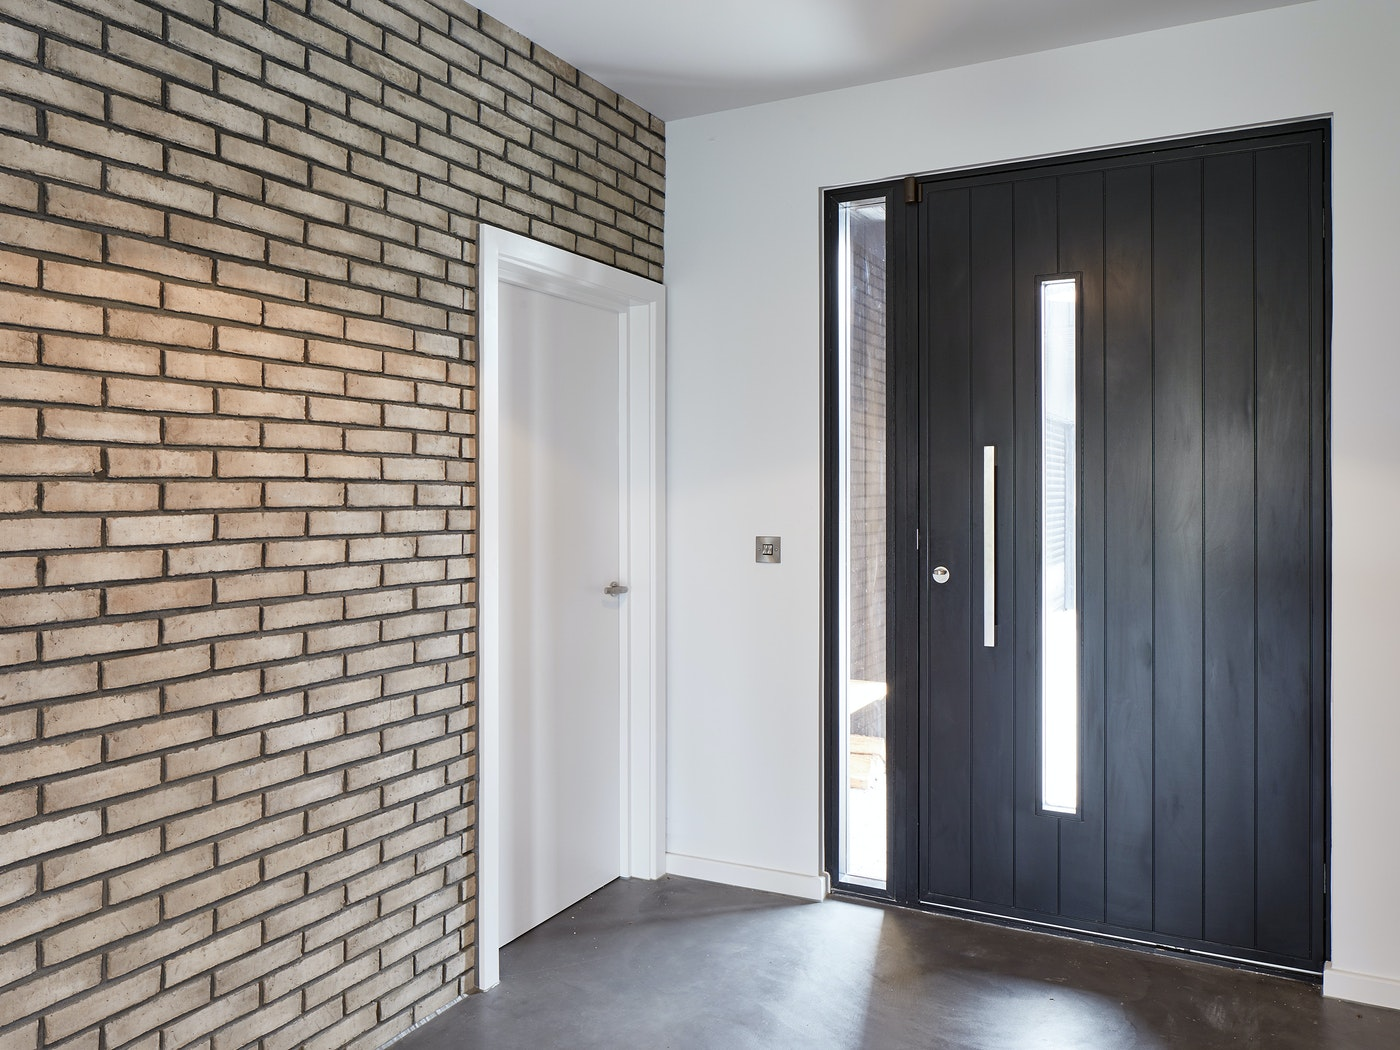 The brick wall & bright white paint nicely highlights the contemporary black door in this hallway